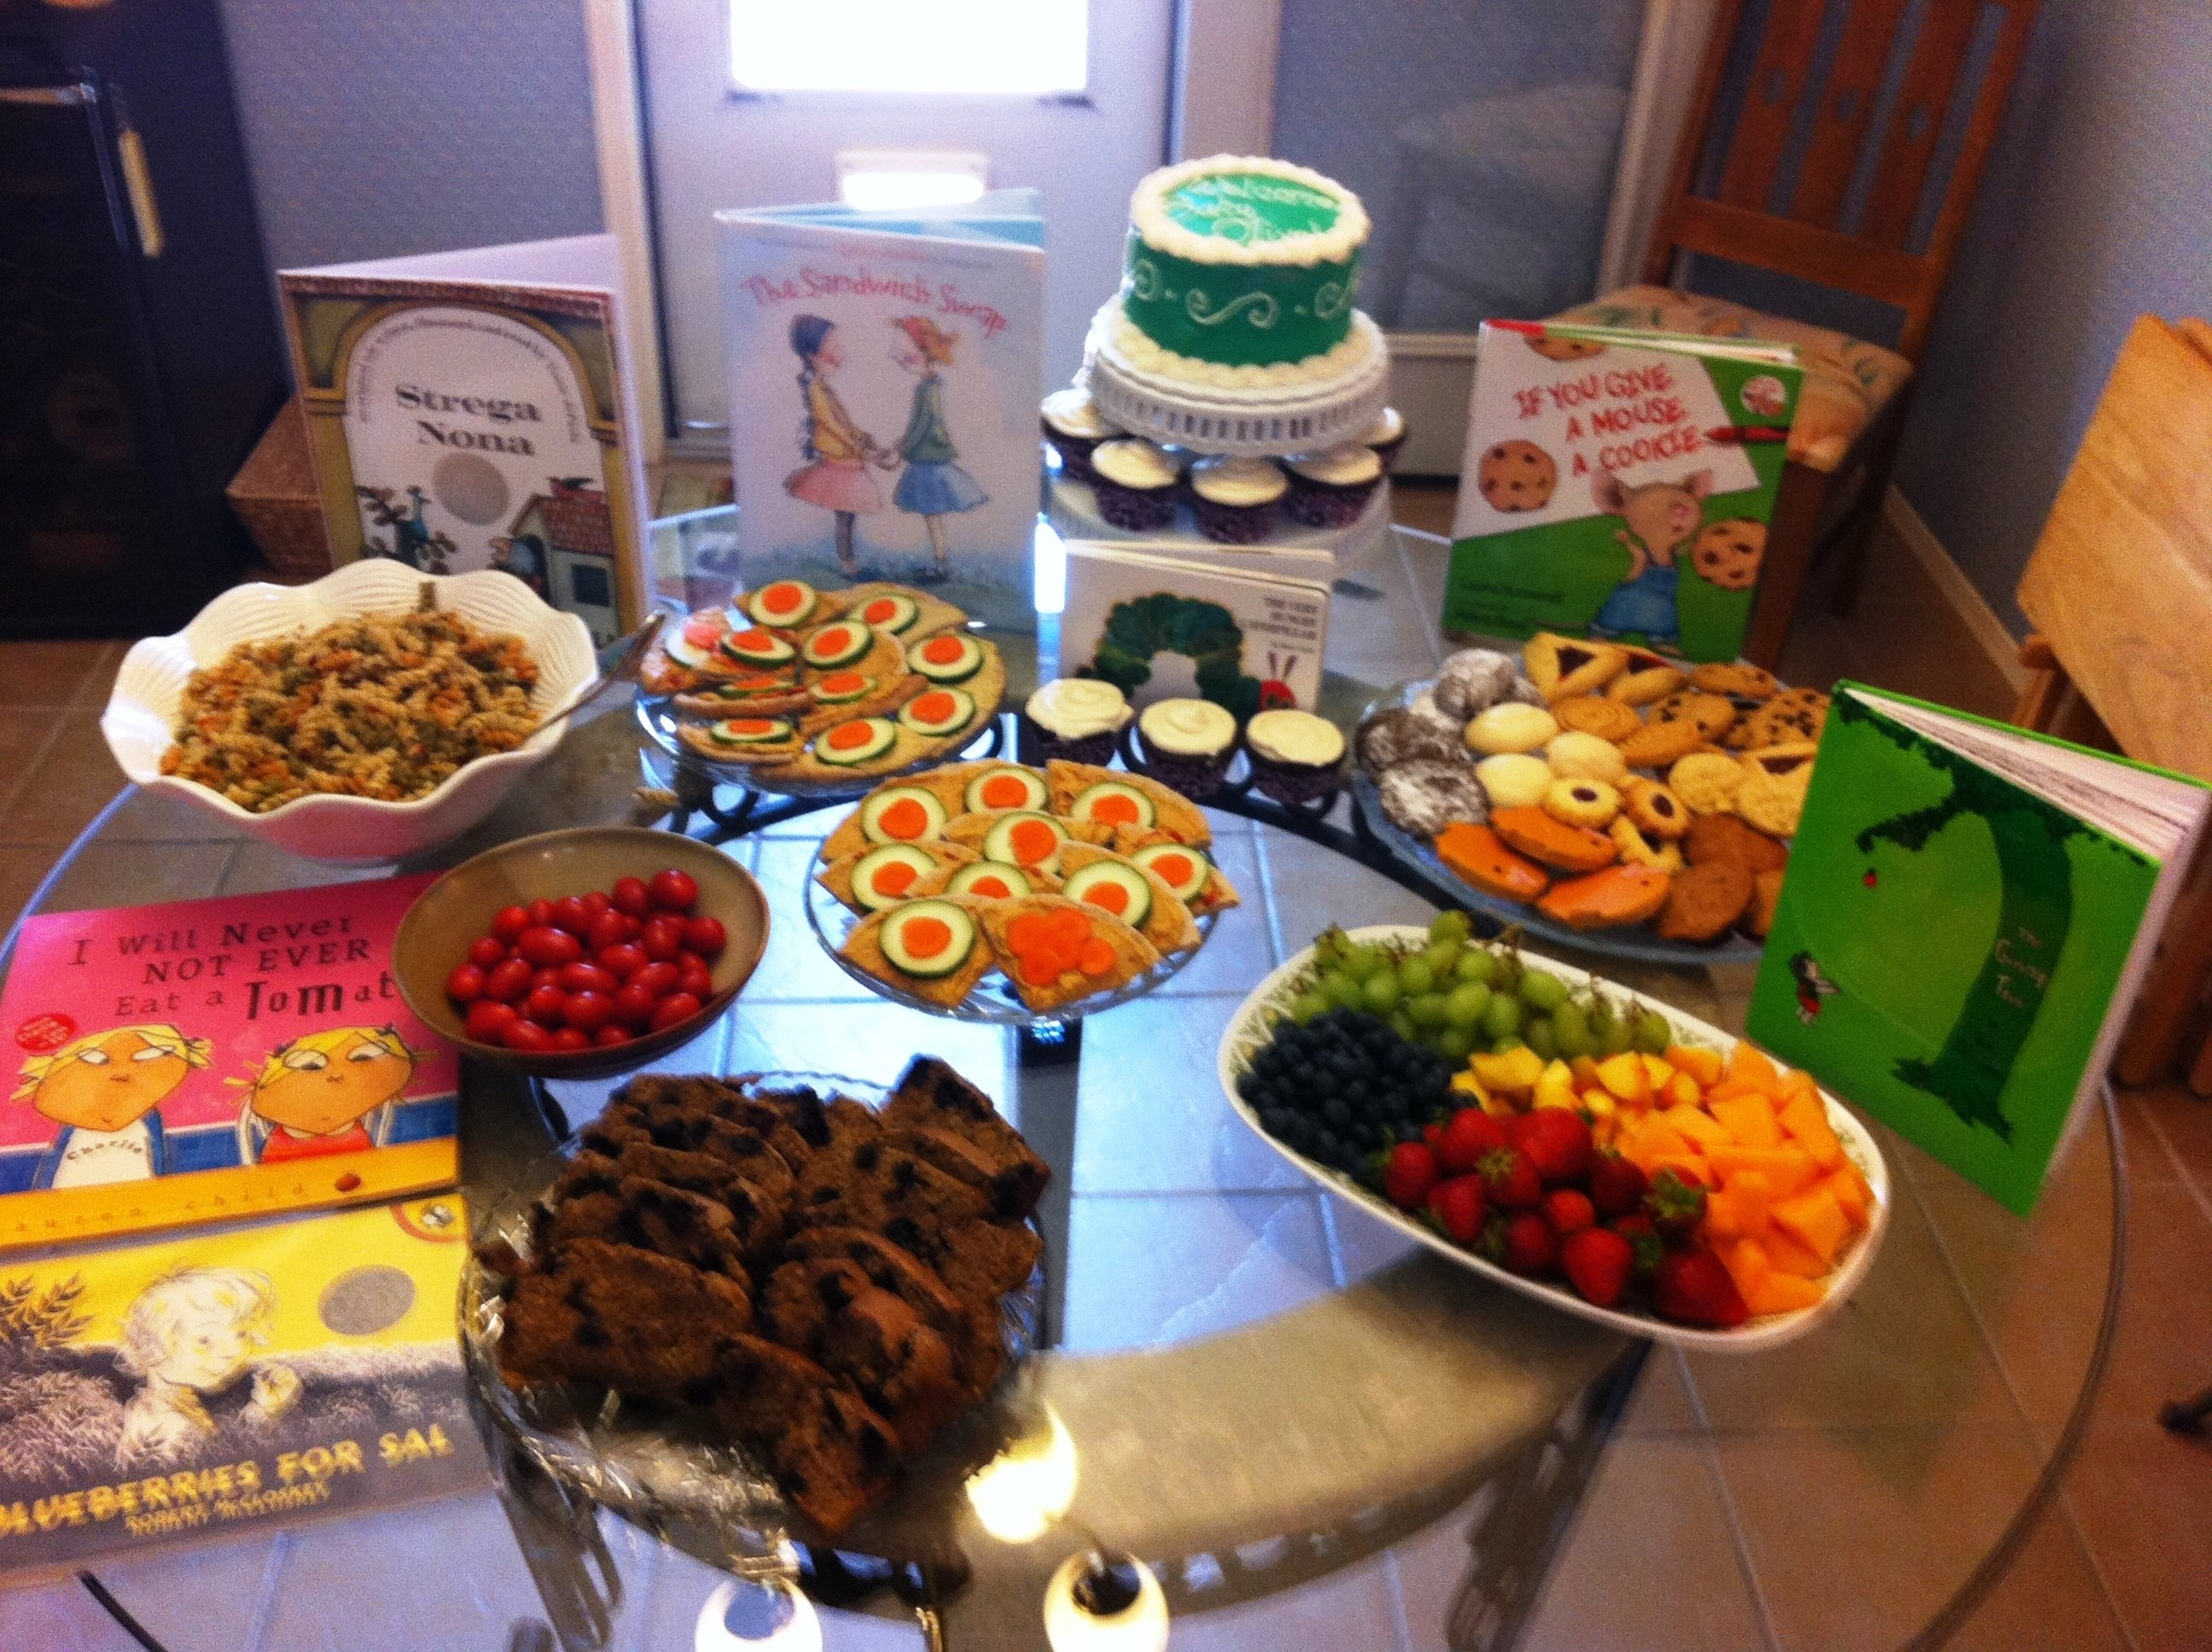 10 Stunning Baby Shower Food Ideas For Boy cool baby shower finger food ideas budget and baby shower ideas kits 9 2020